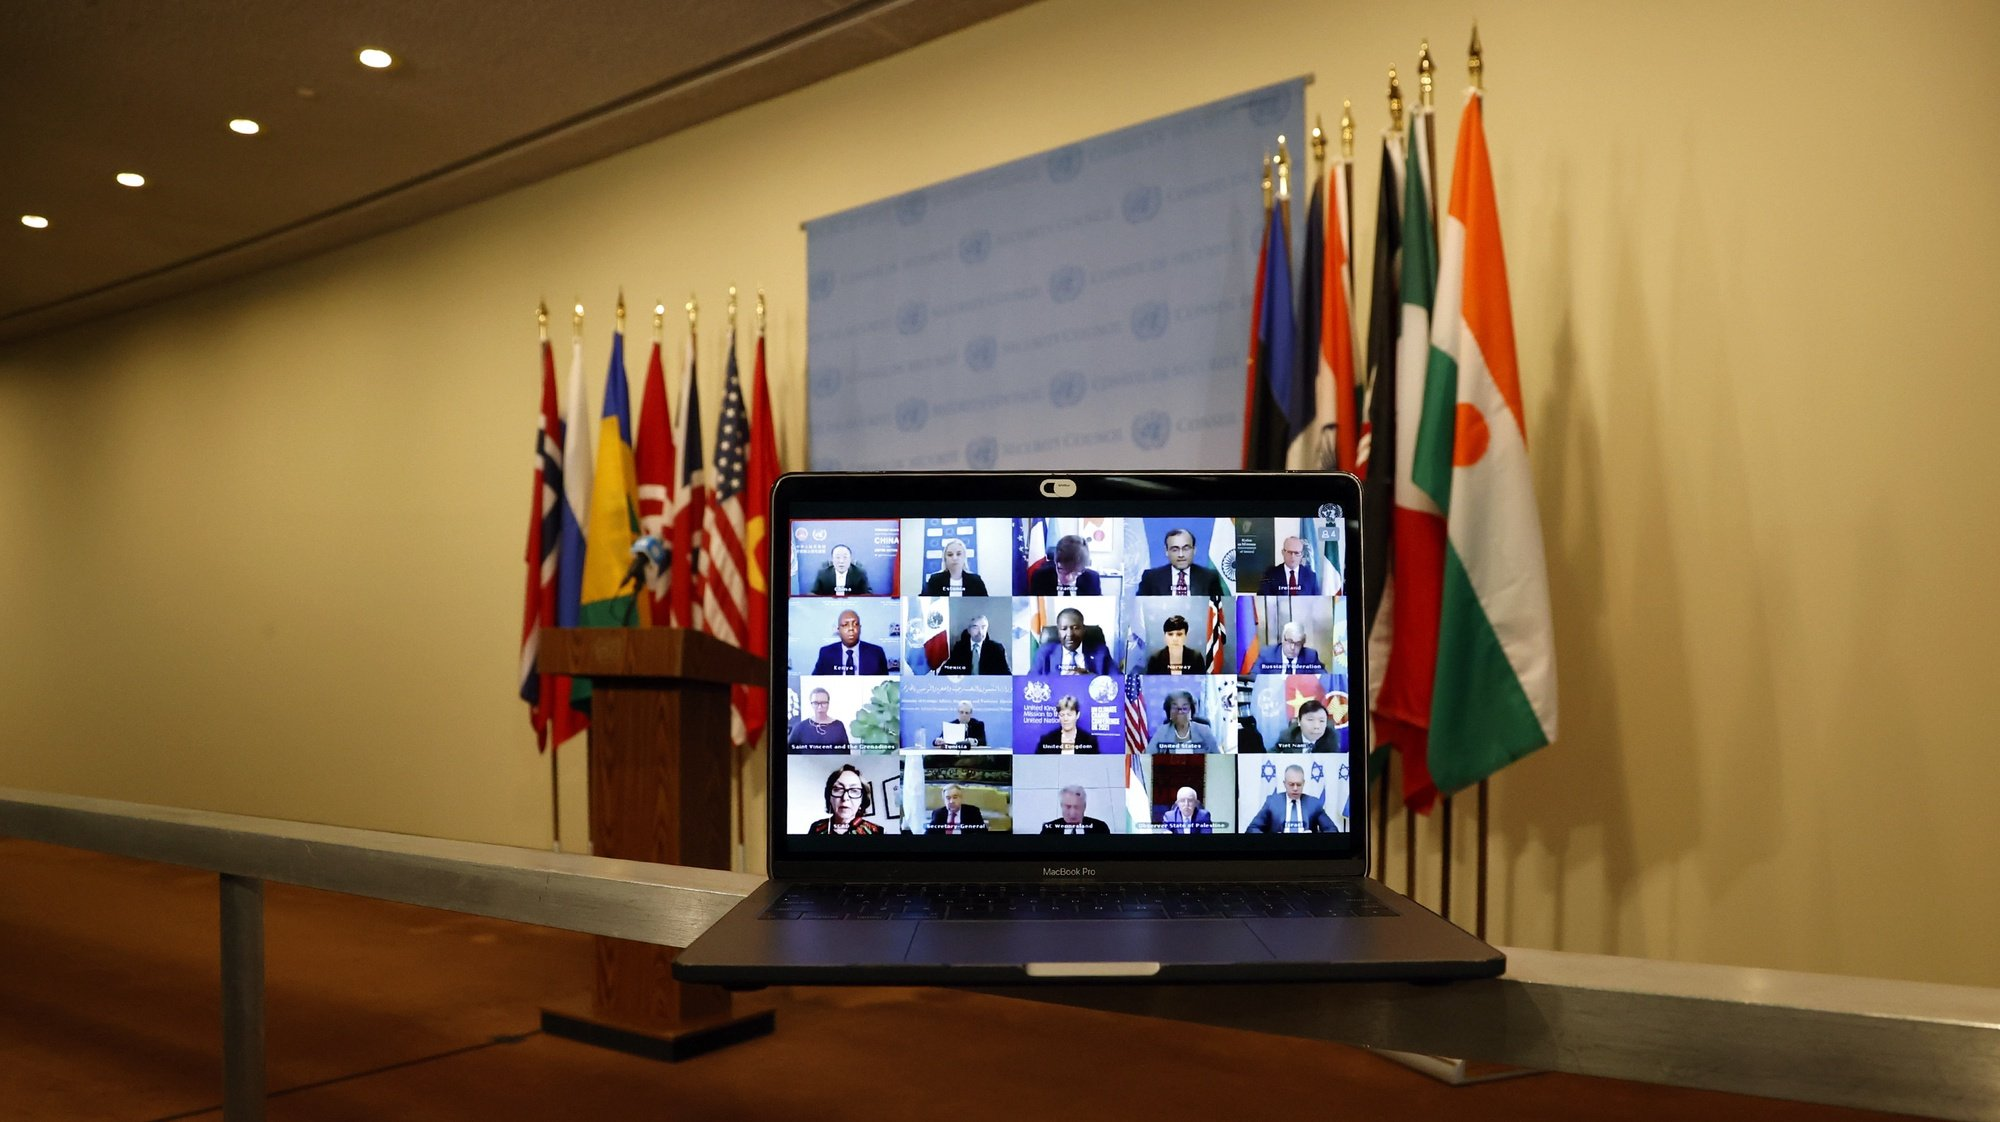 epa09204722 A computer screen is seen while members of the United Nations Security Council meet virtually on the situation in the Middle East, including the Palestinian question outside the Security Council stakeout area at United Nations Headquarters in New York, New York, USA, 16 May 2021.  EPA/JASON SZENES